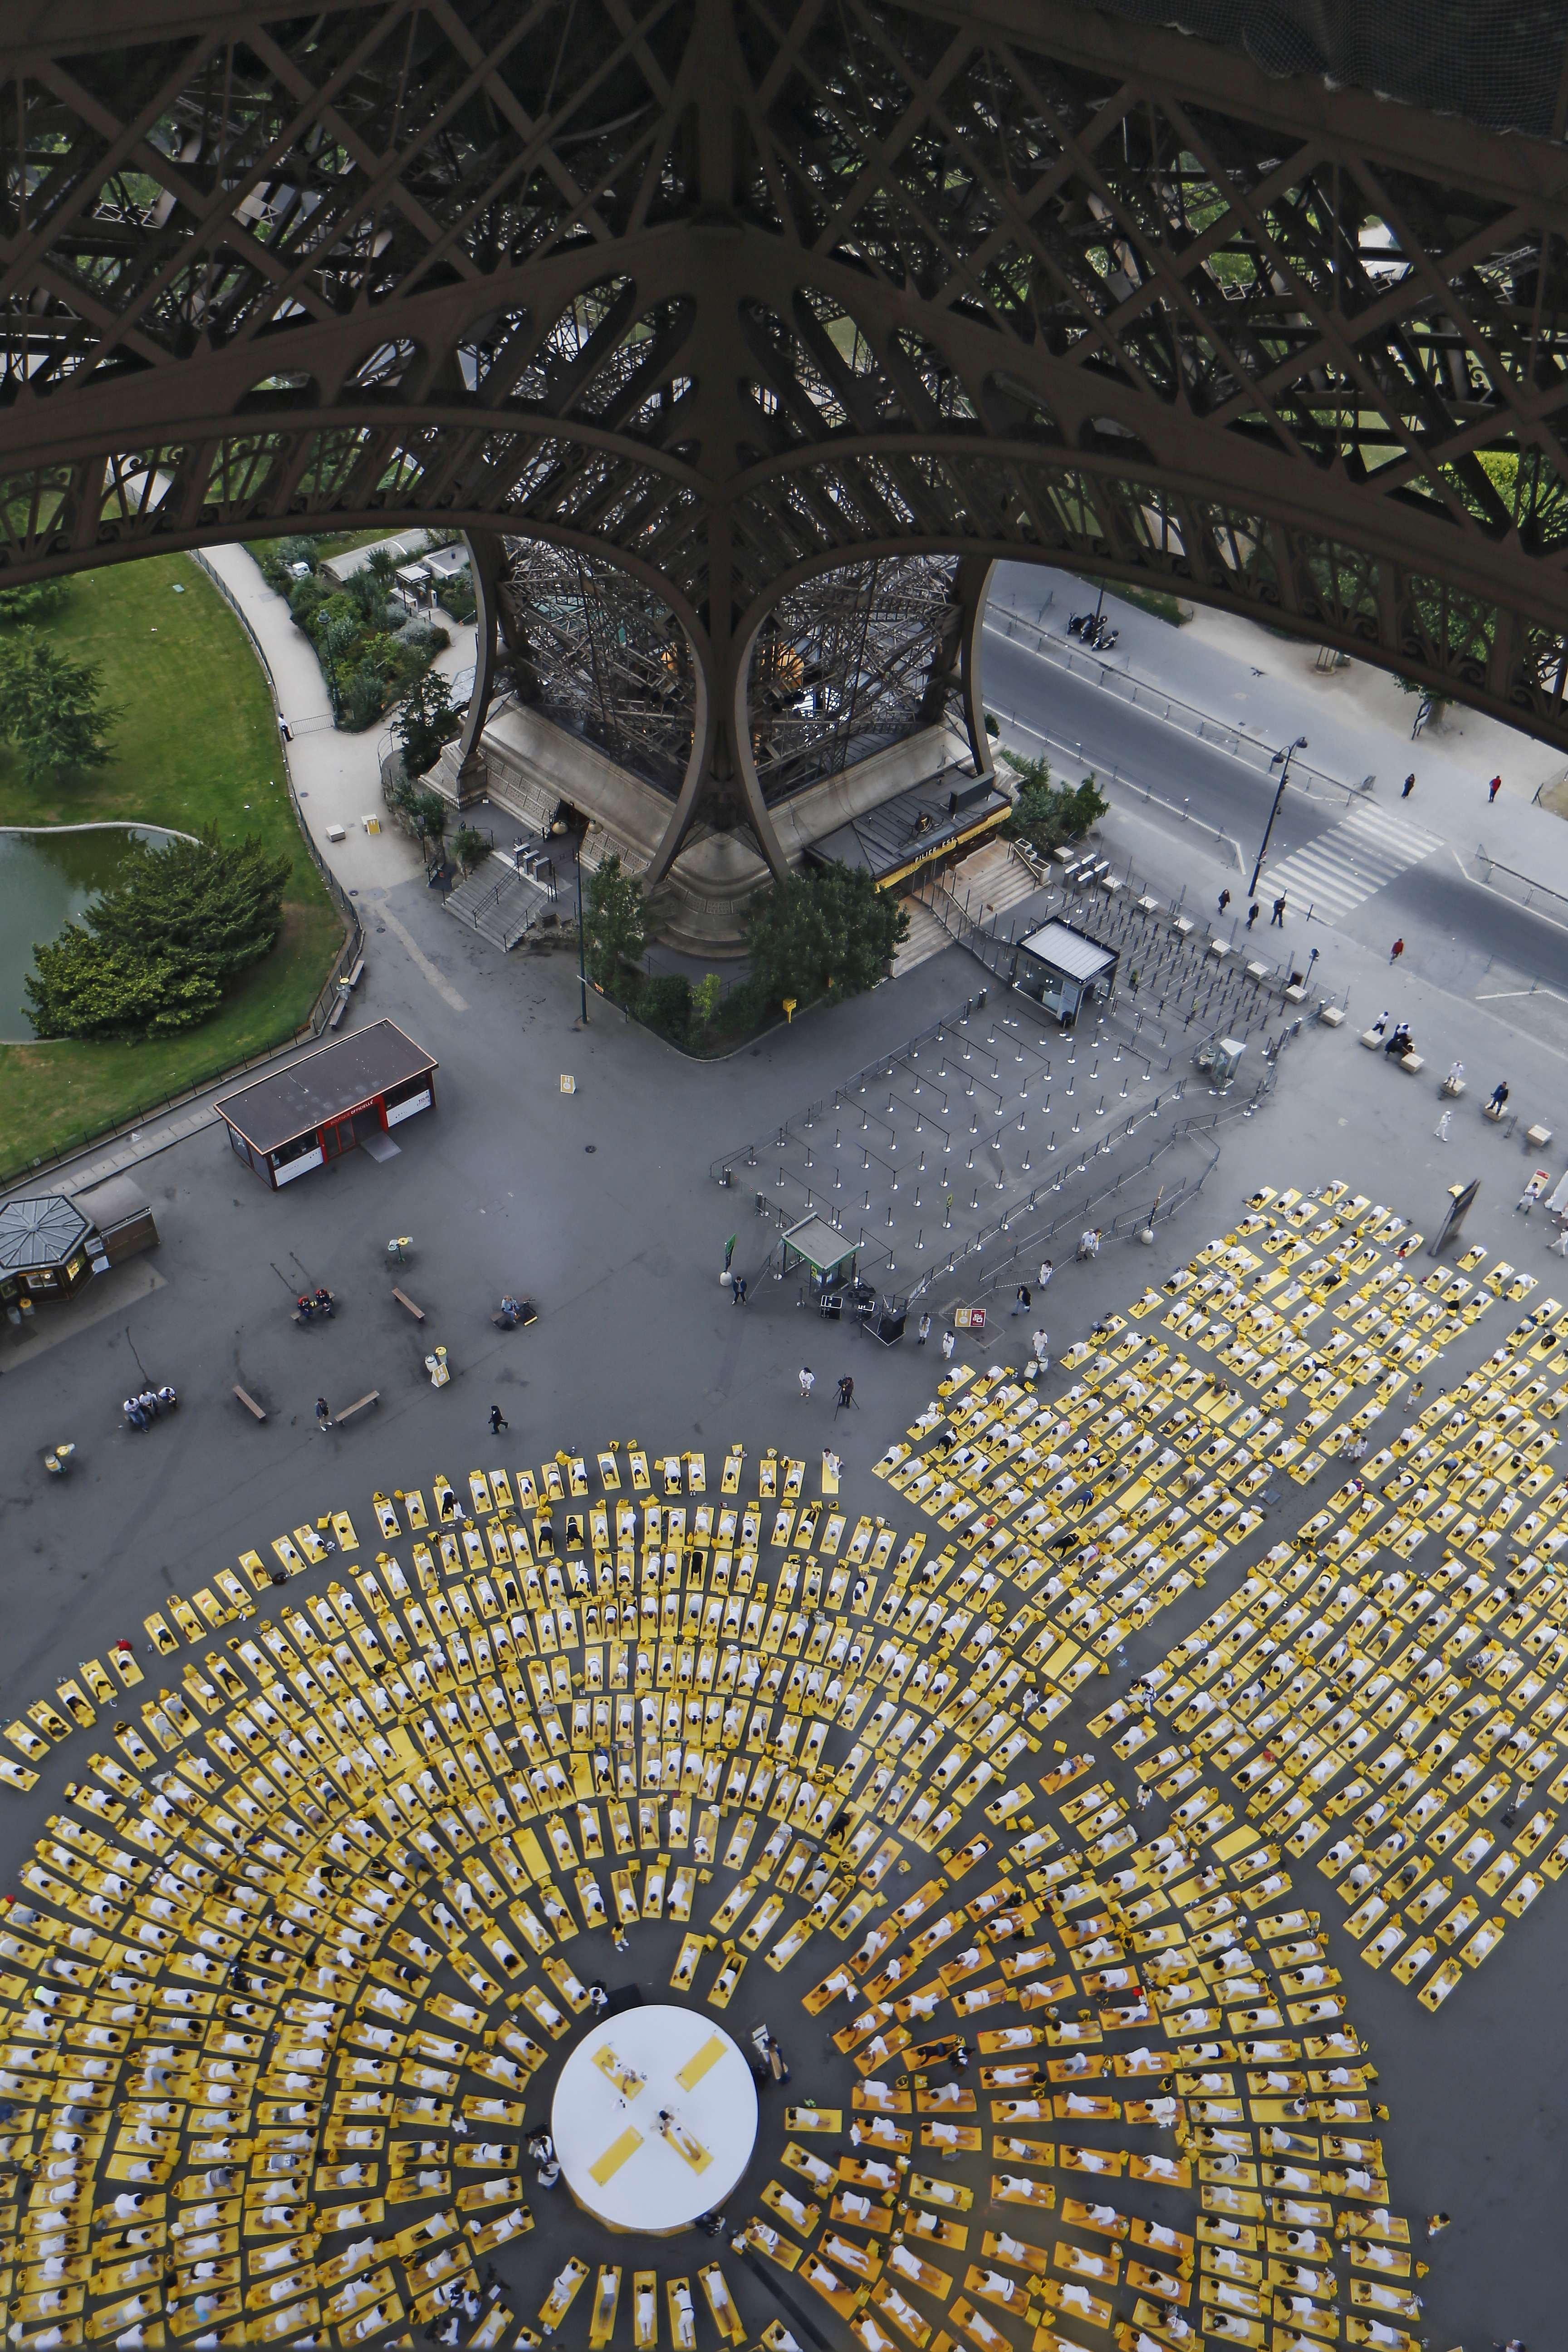 Hundreds of people attend a yoga session under the Eiffel Tower in Paris, on June 21, 2015, in a mass yoga session to mark the first International Yoga Day.